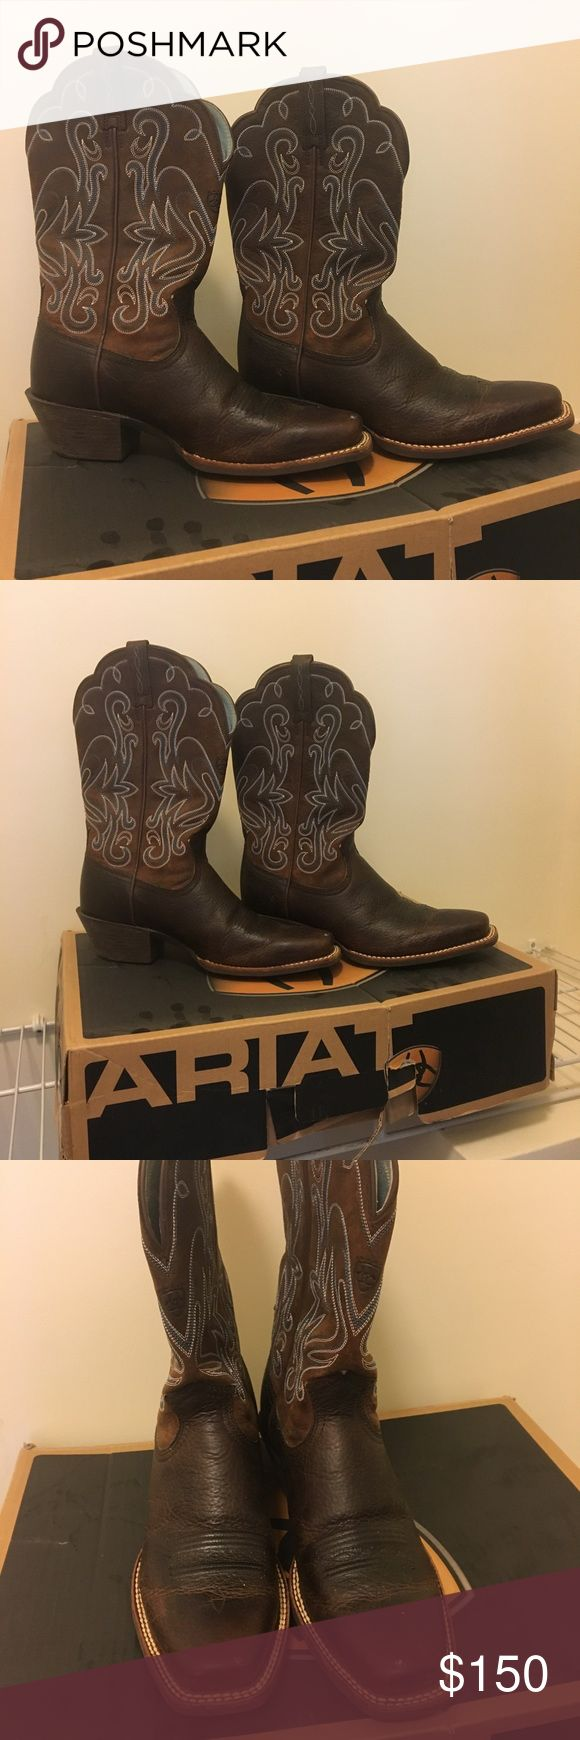 Ariat brown leather embroidered cowboy boots Dark brown leather and turquoise blue embroidered Ariat cowboy boots in 8.5. Brand new with the box! Size 8.5 but runs small, size up a half size. Ariat Shoes